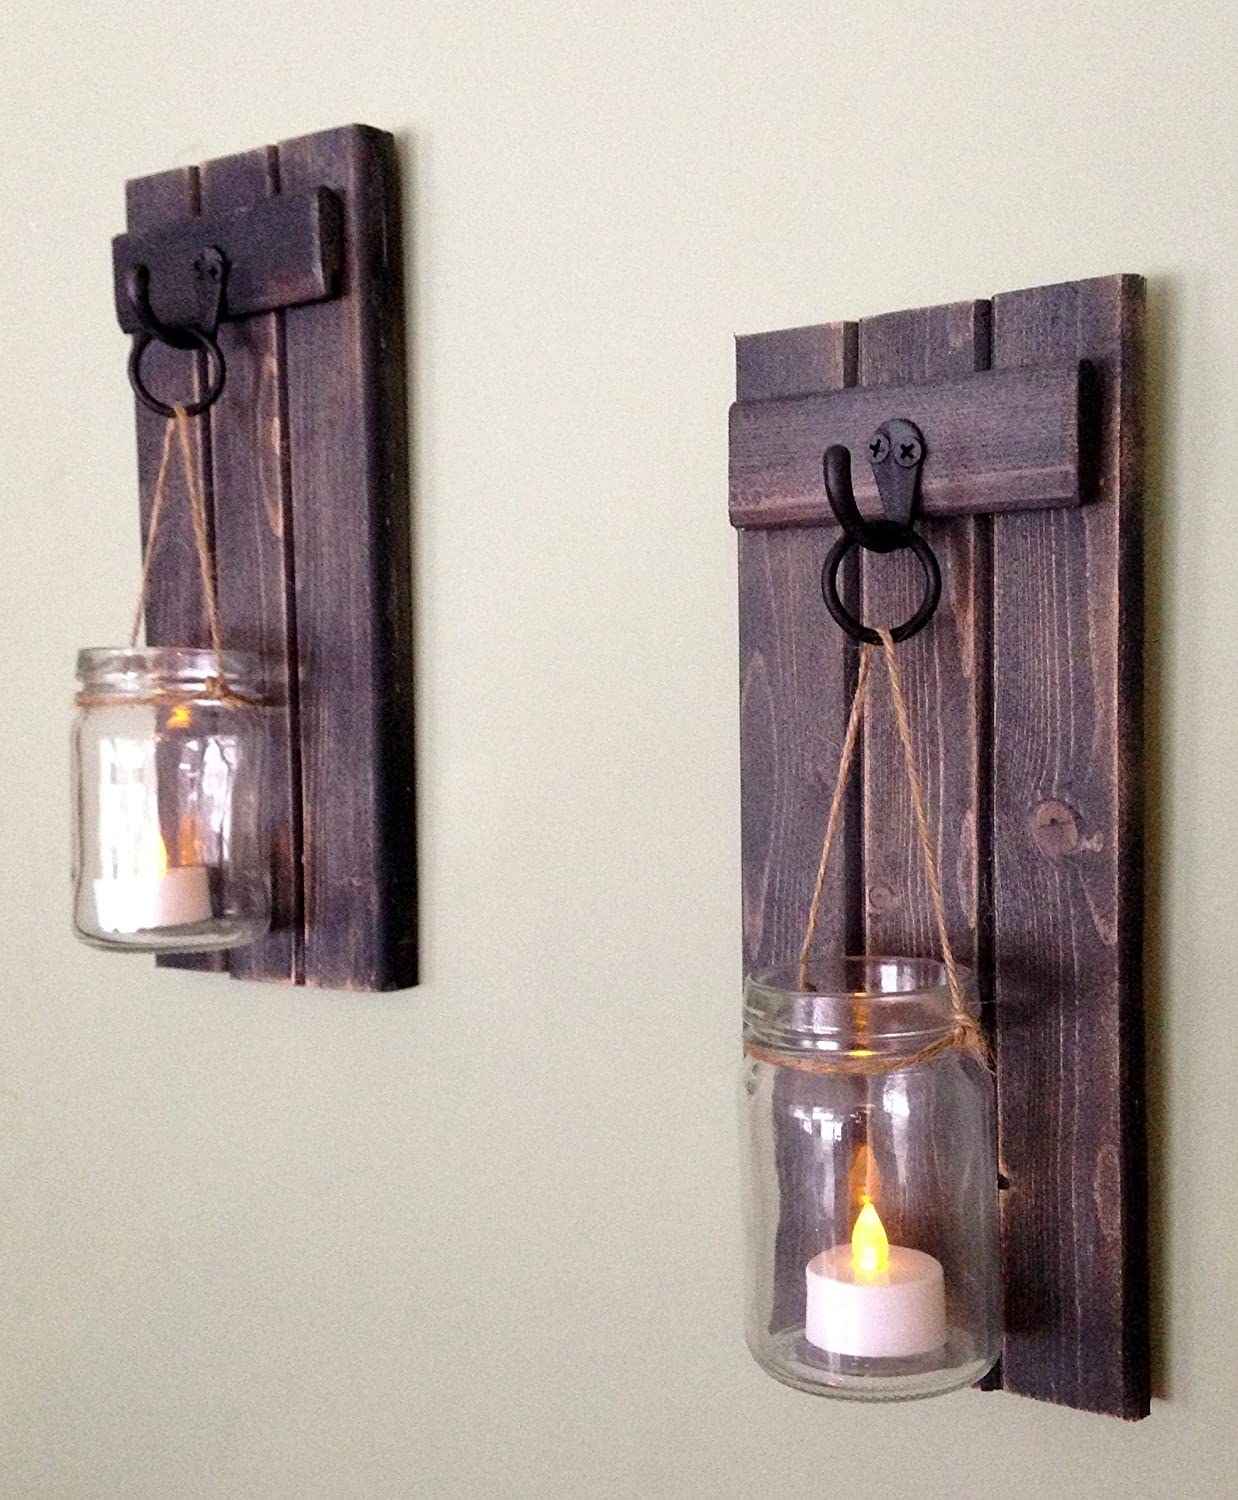 Rustic Wall Decor, Wall Sconce, Rustic Wall Sconce, Candle Holder, Rustic Wooden Candle Holder, Black Set Of Two, 12